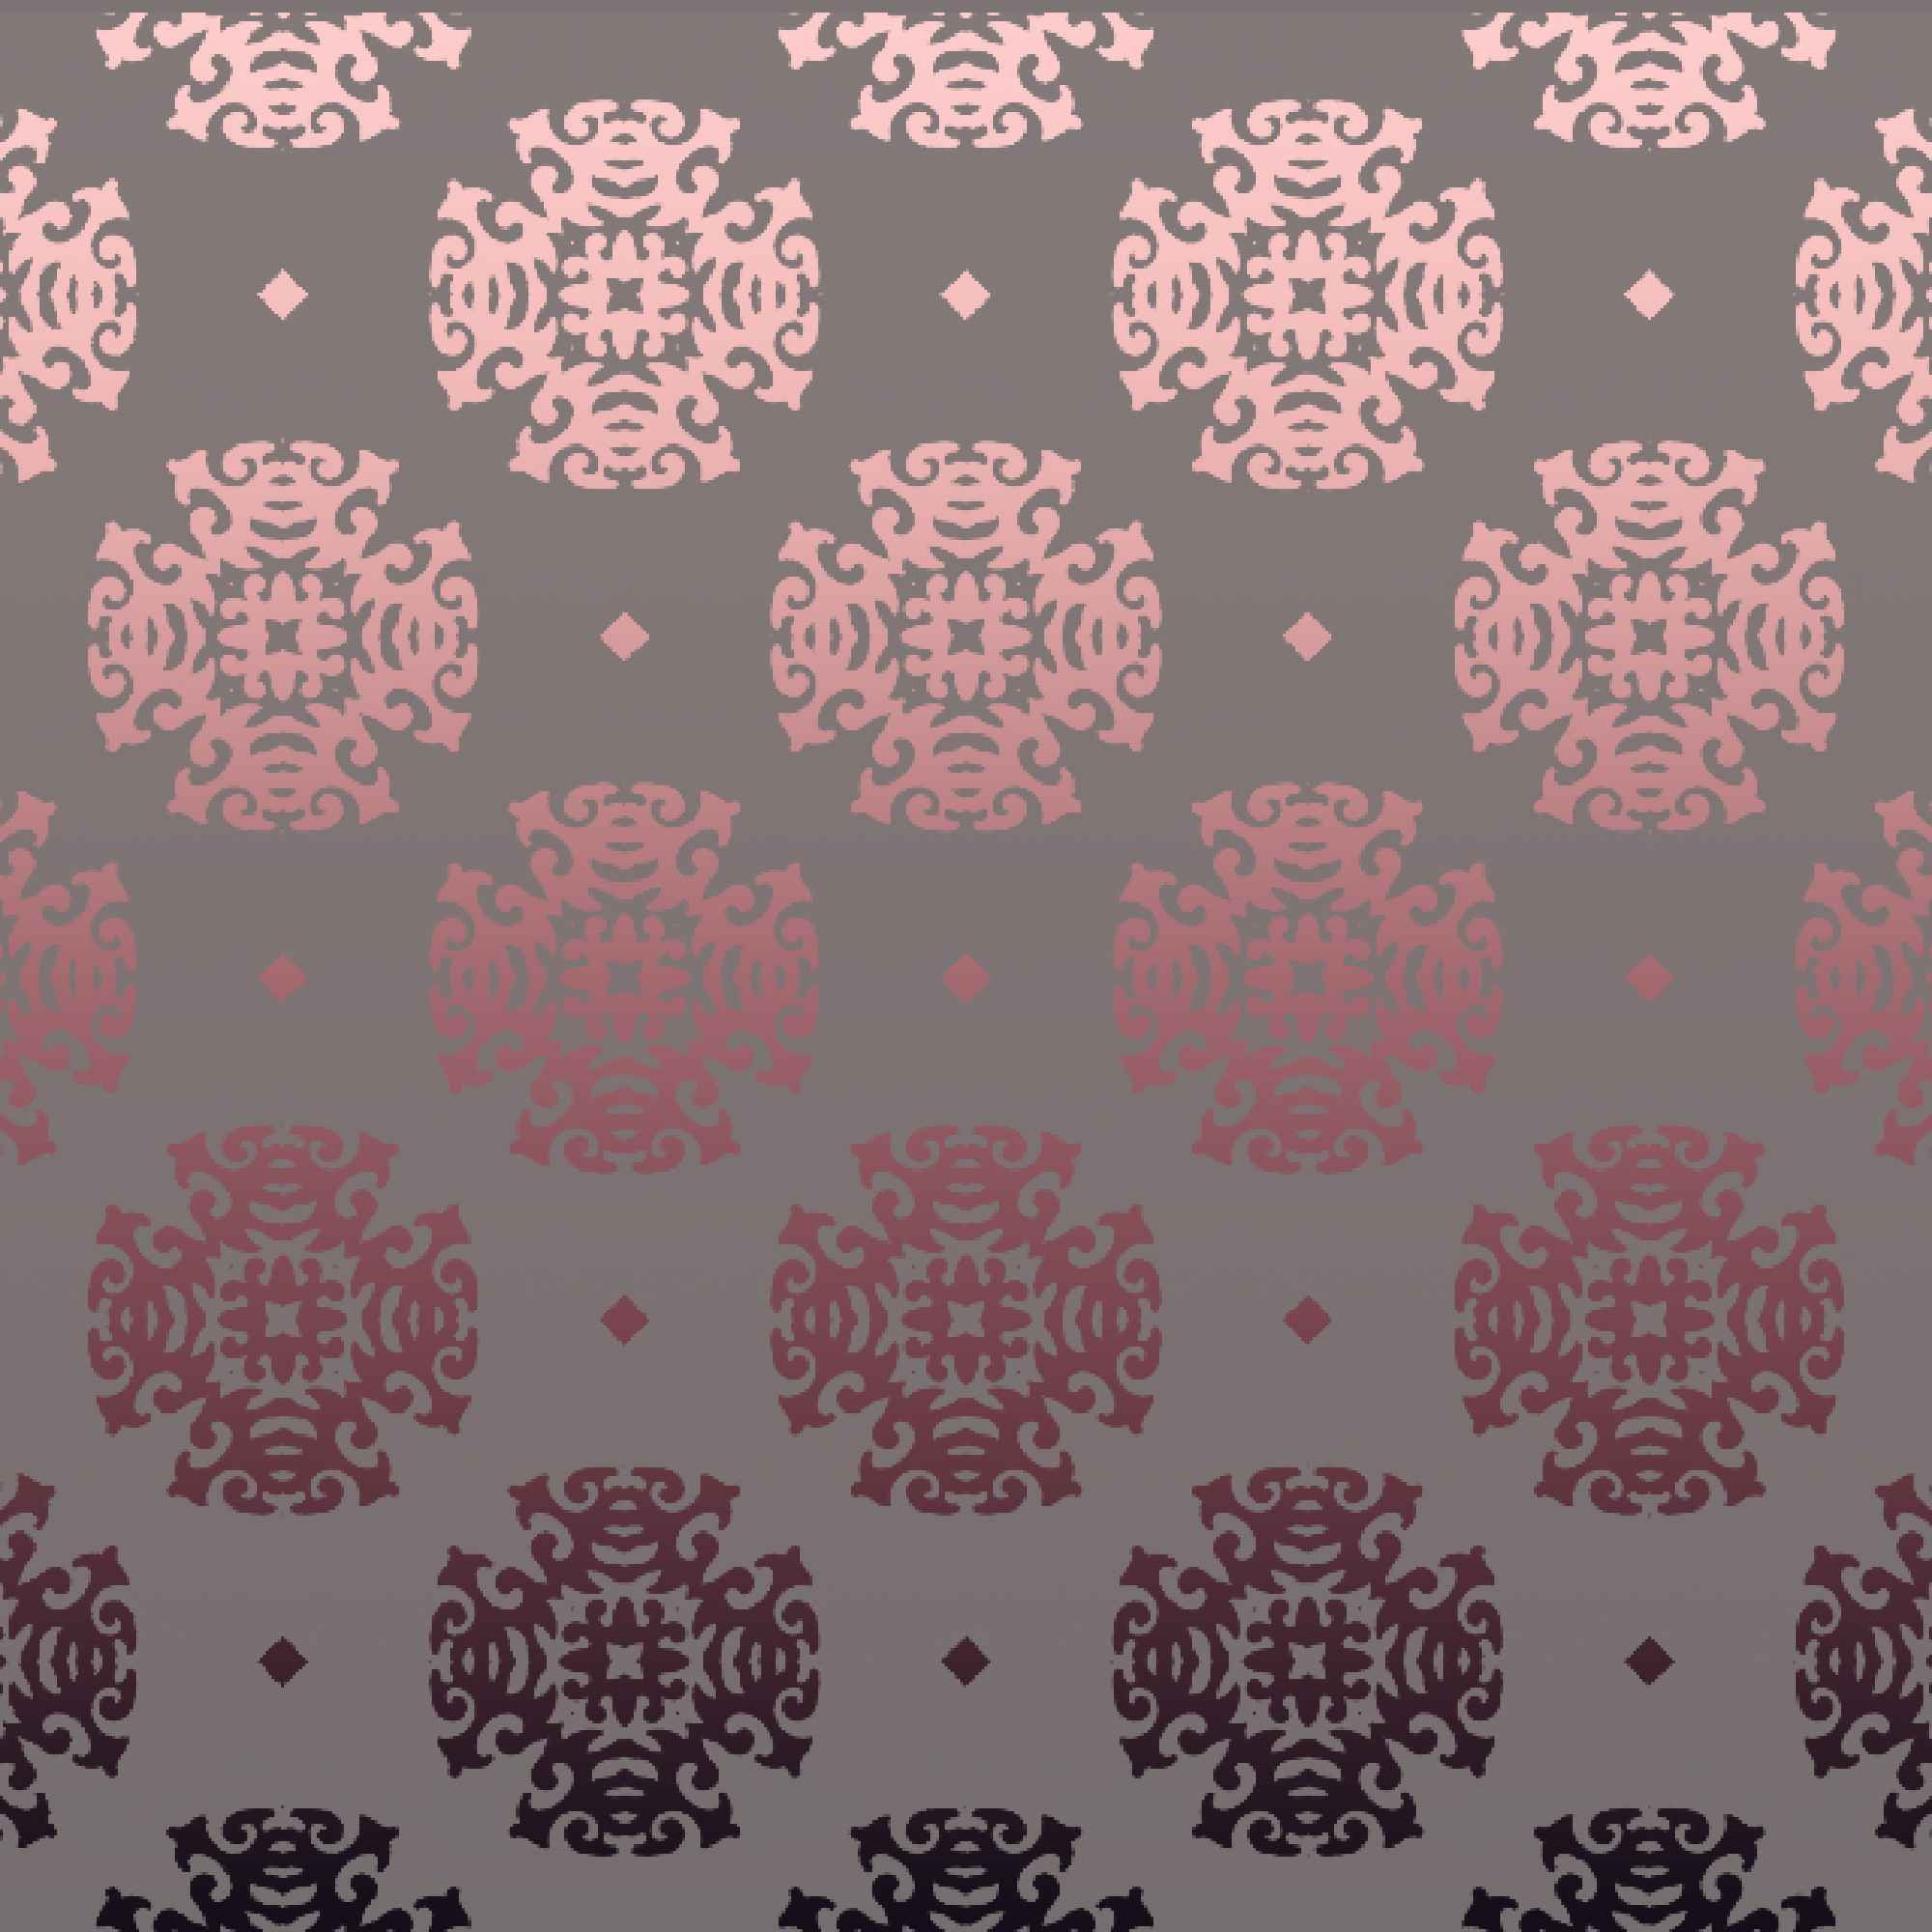 ZeldaMiddleton_Shyrdakpattern_Colourway 5.jpg